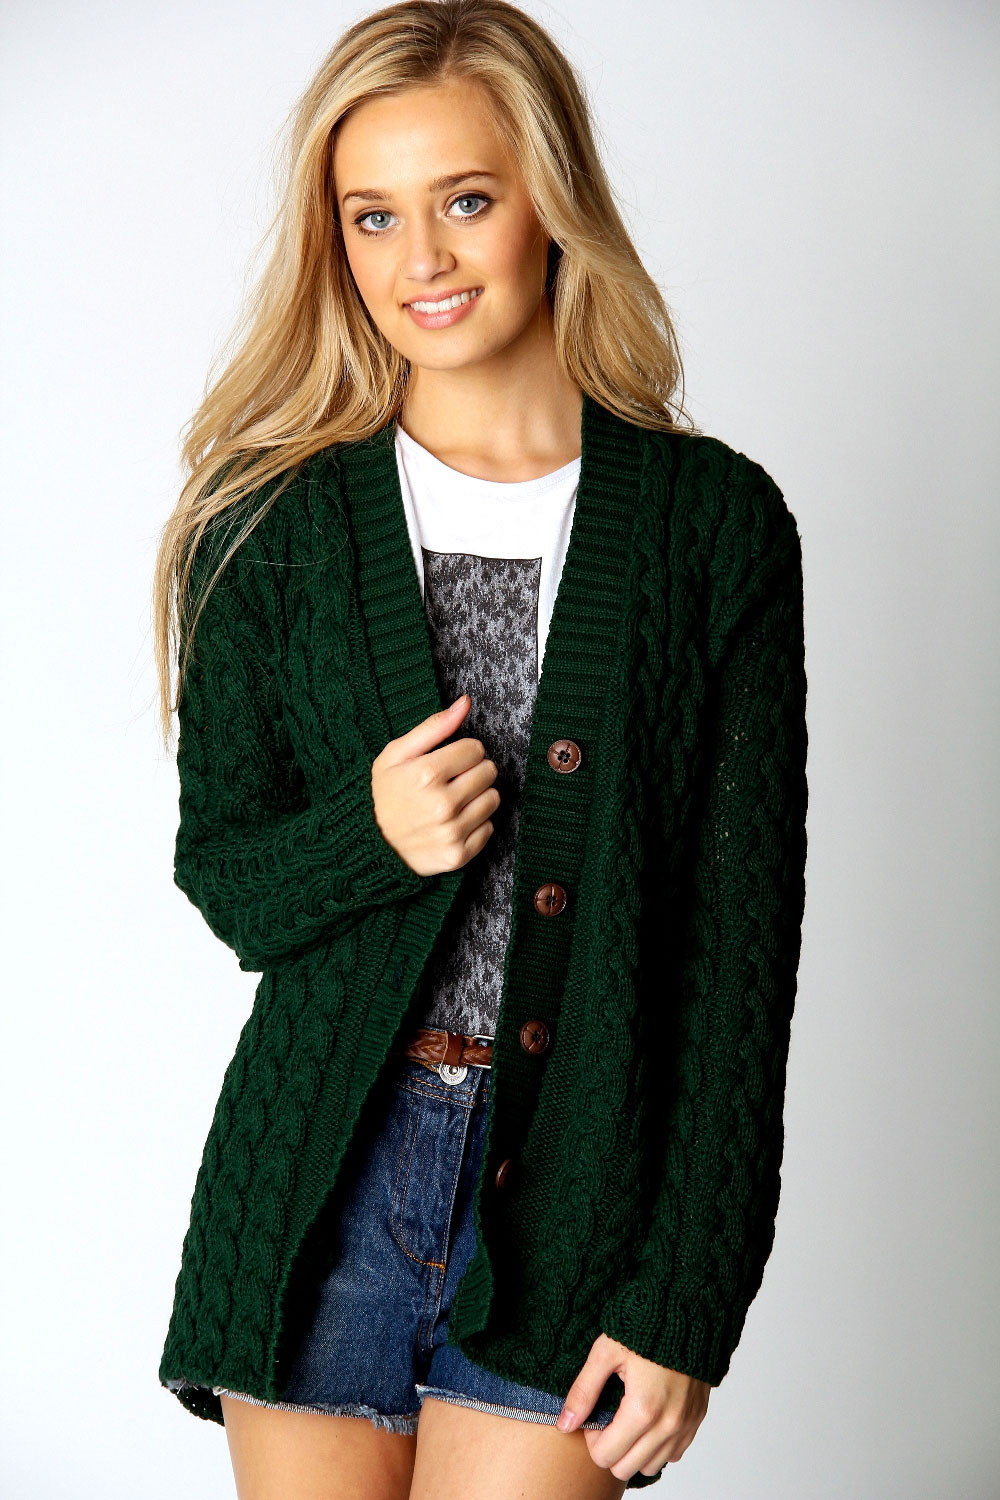 Best Of Boohoo Womens La S Lucy Cable Knit Long Sleeve Hip Cable Knit Cardigan Sweater Of Wonderful 46 Models Cable Knit Cardigan Sweater